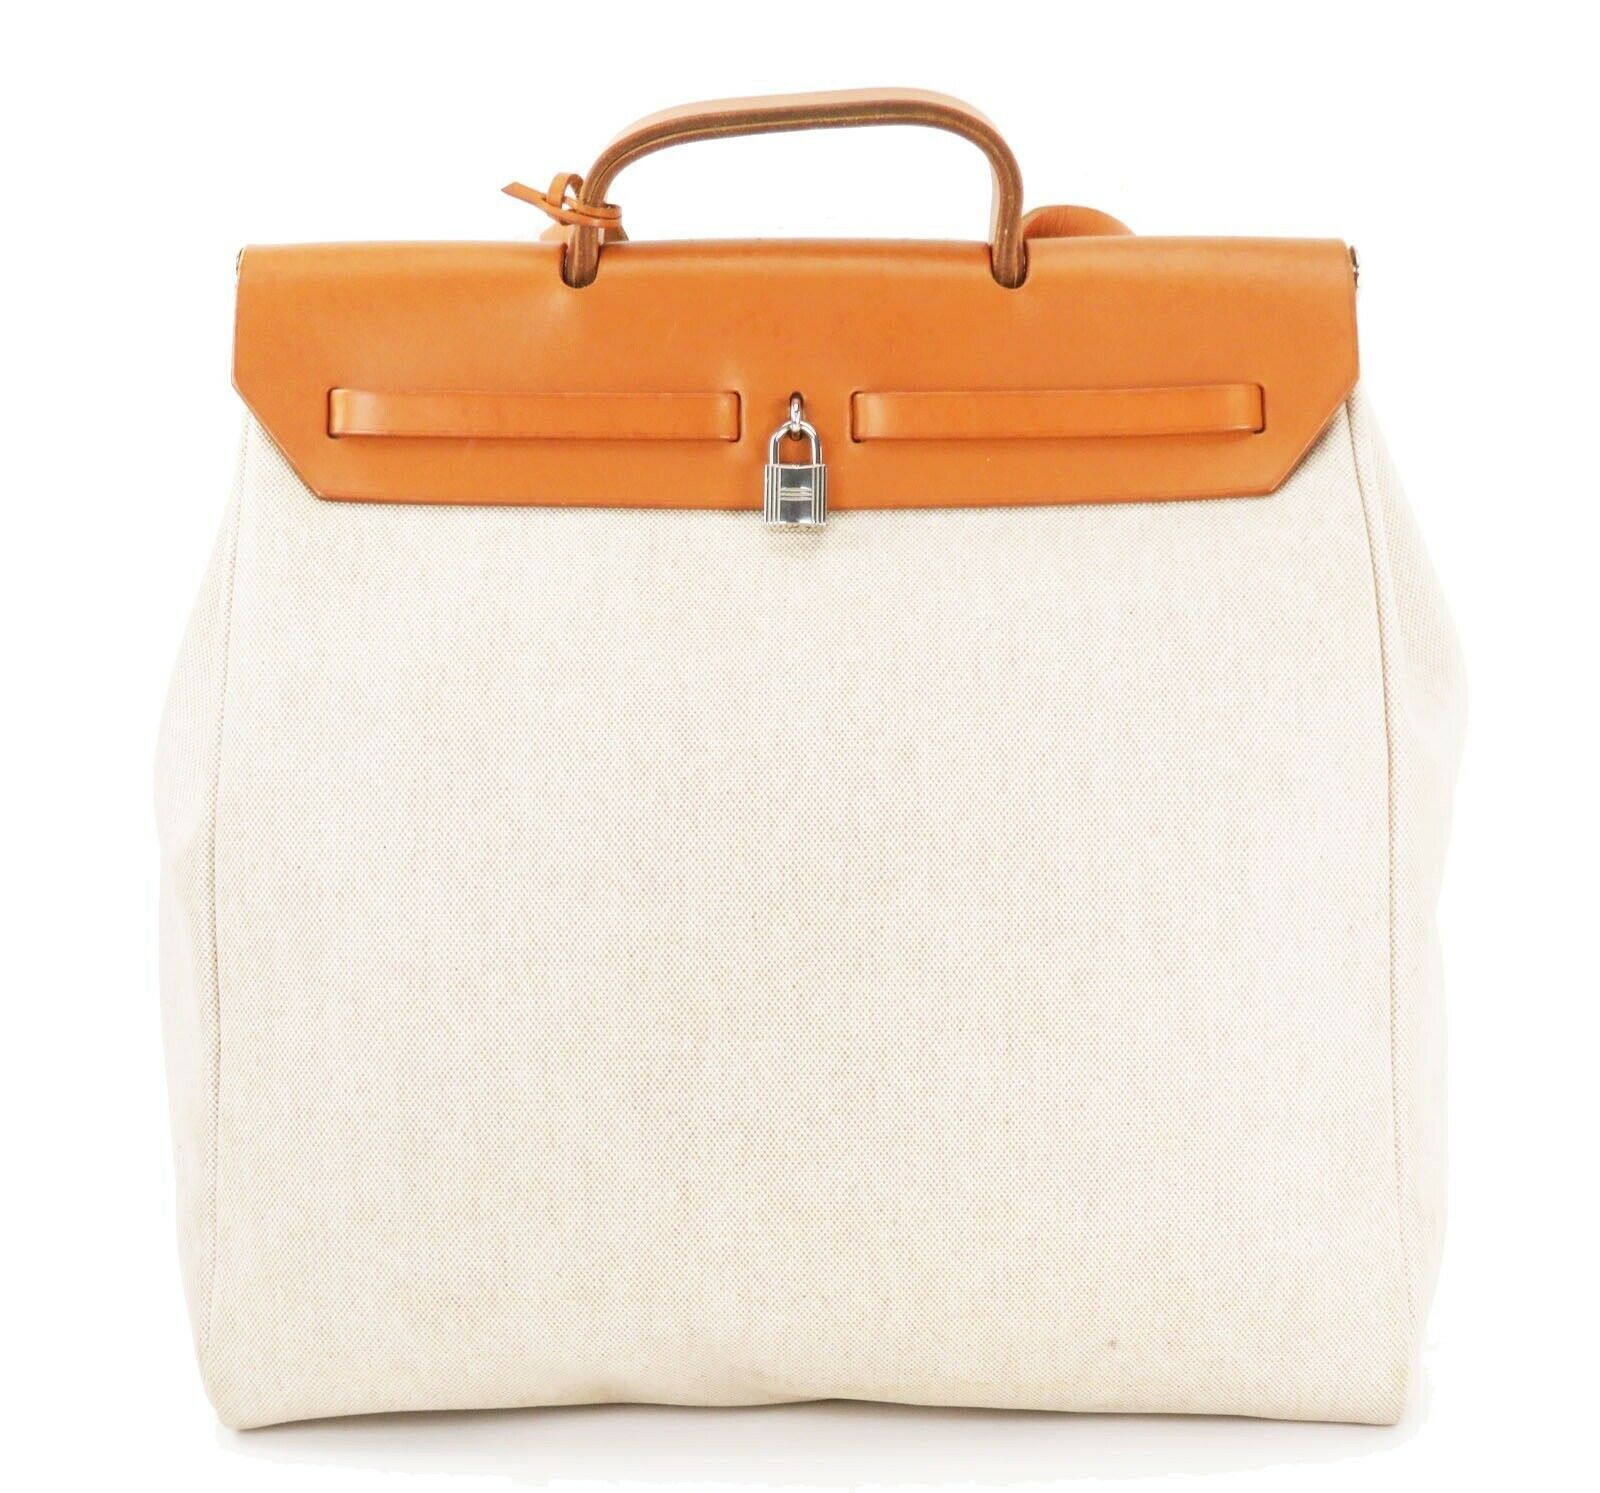 Auth HERMES Her Bag 2 in 1 Beige Canvas and Leather Hand Shoulder Bag #26110 image 4